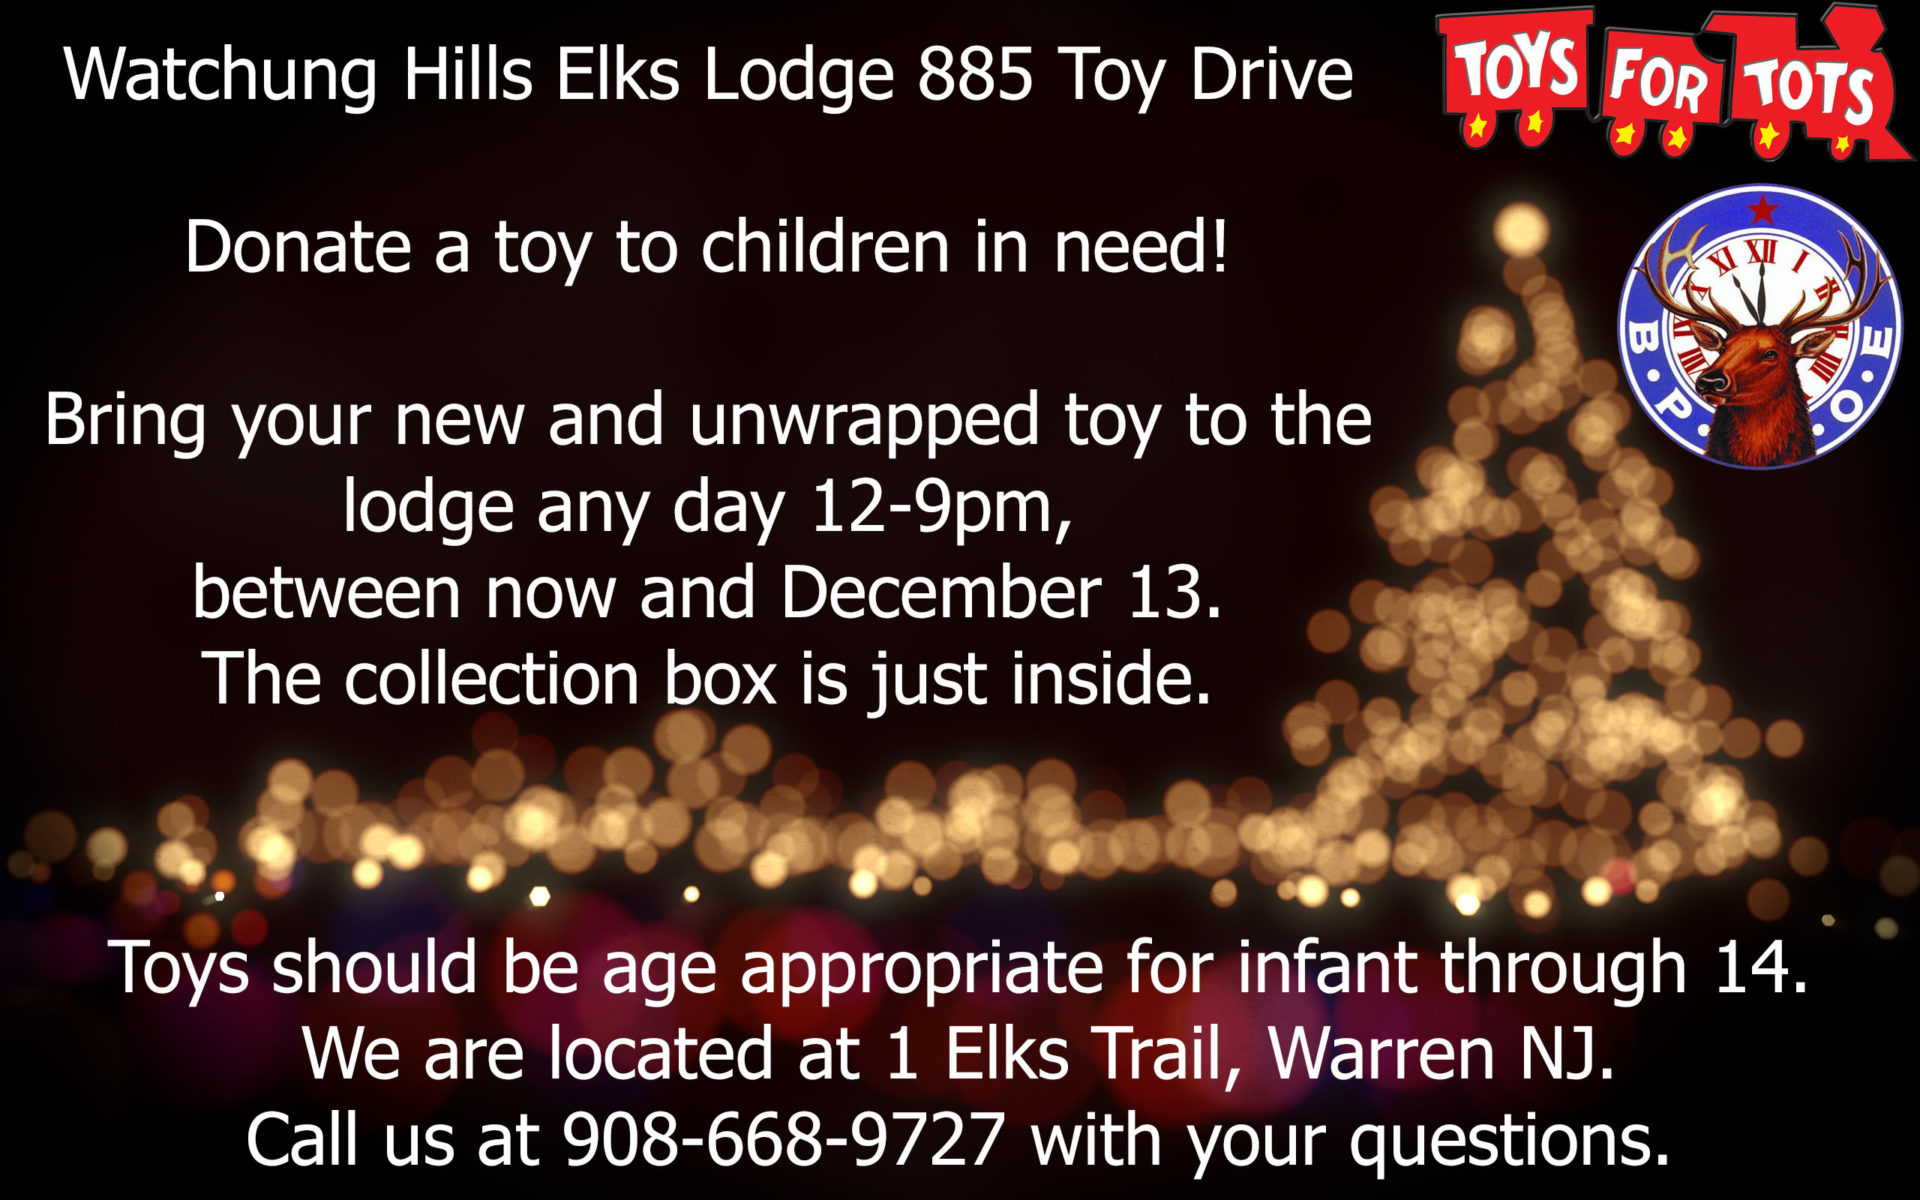 Toys for Tots 2018